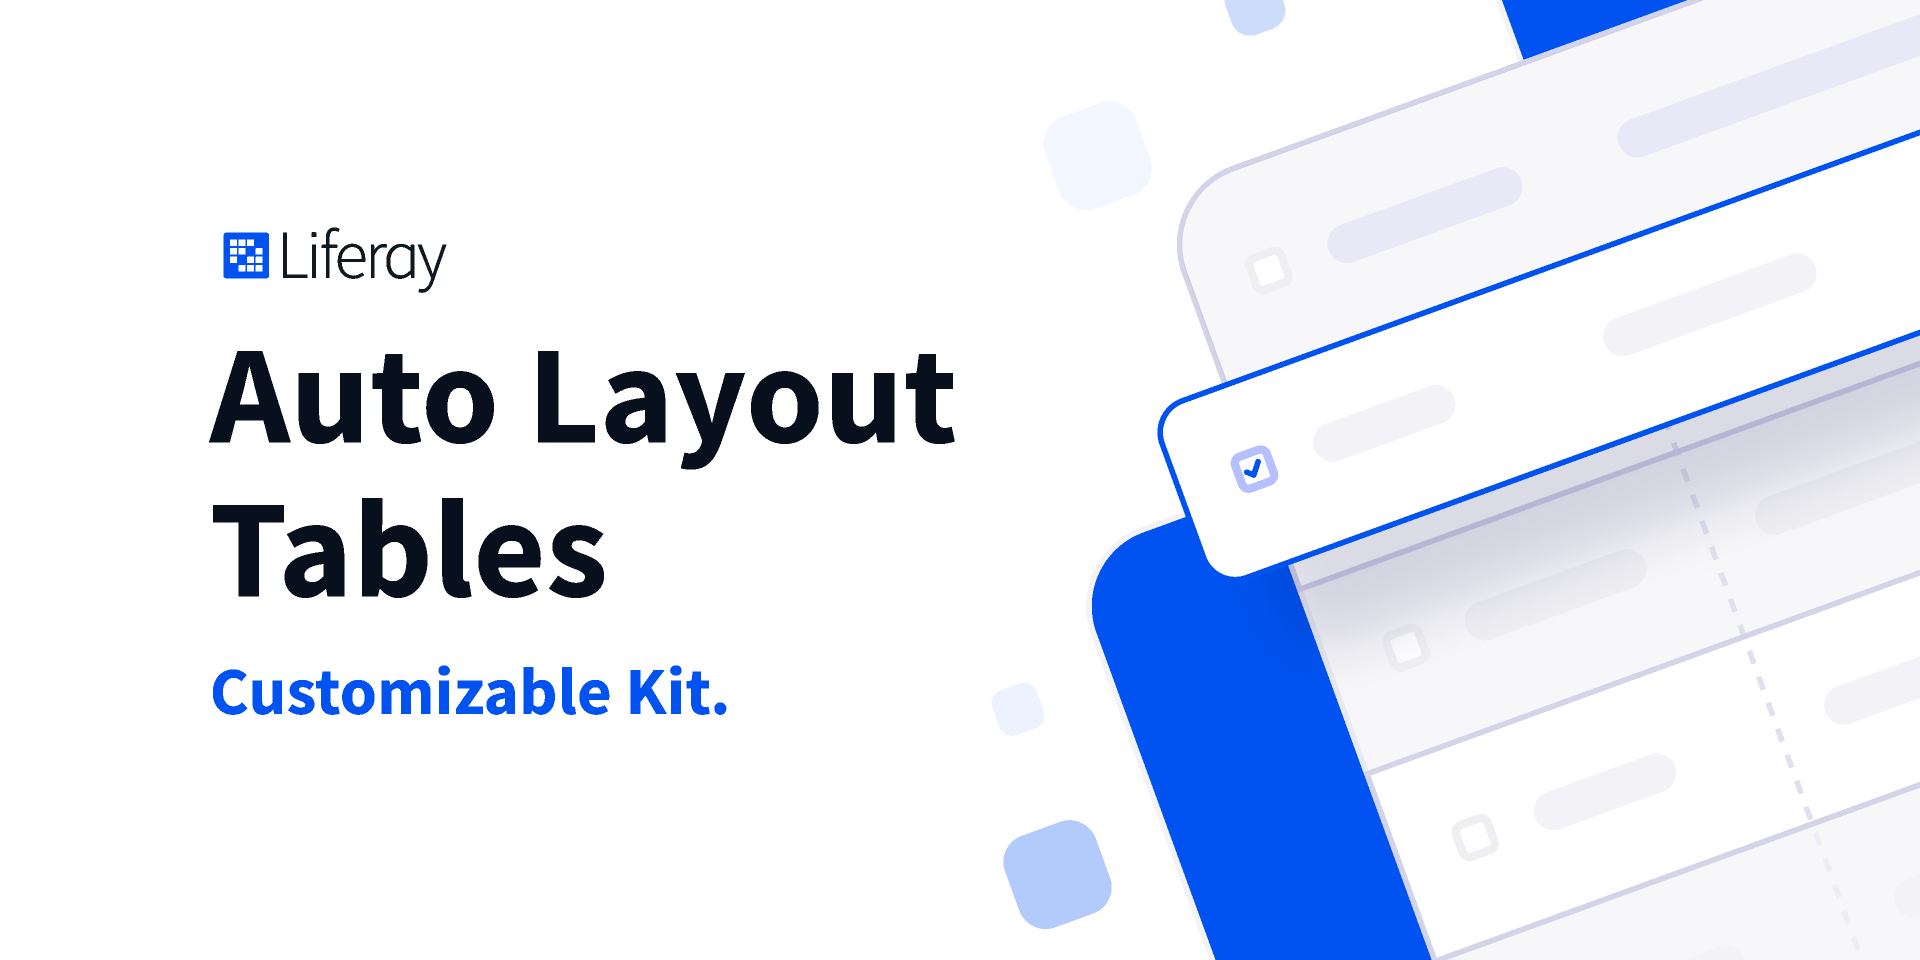 Auto Layout Tables